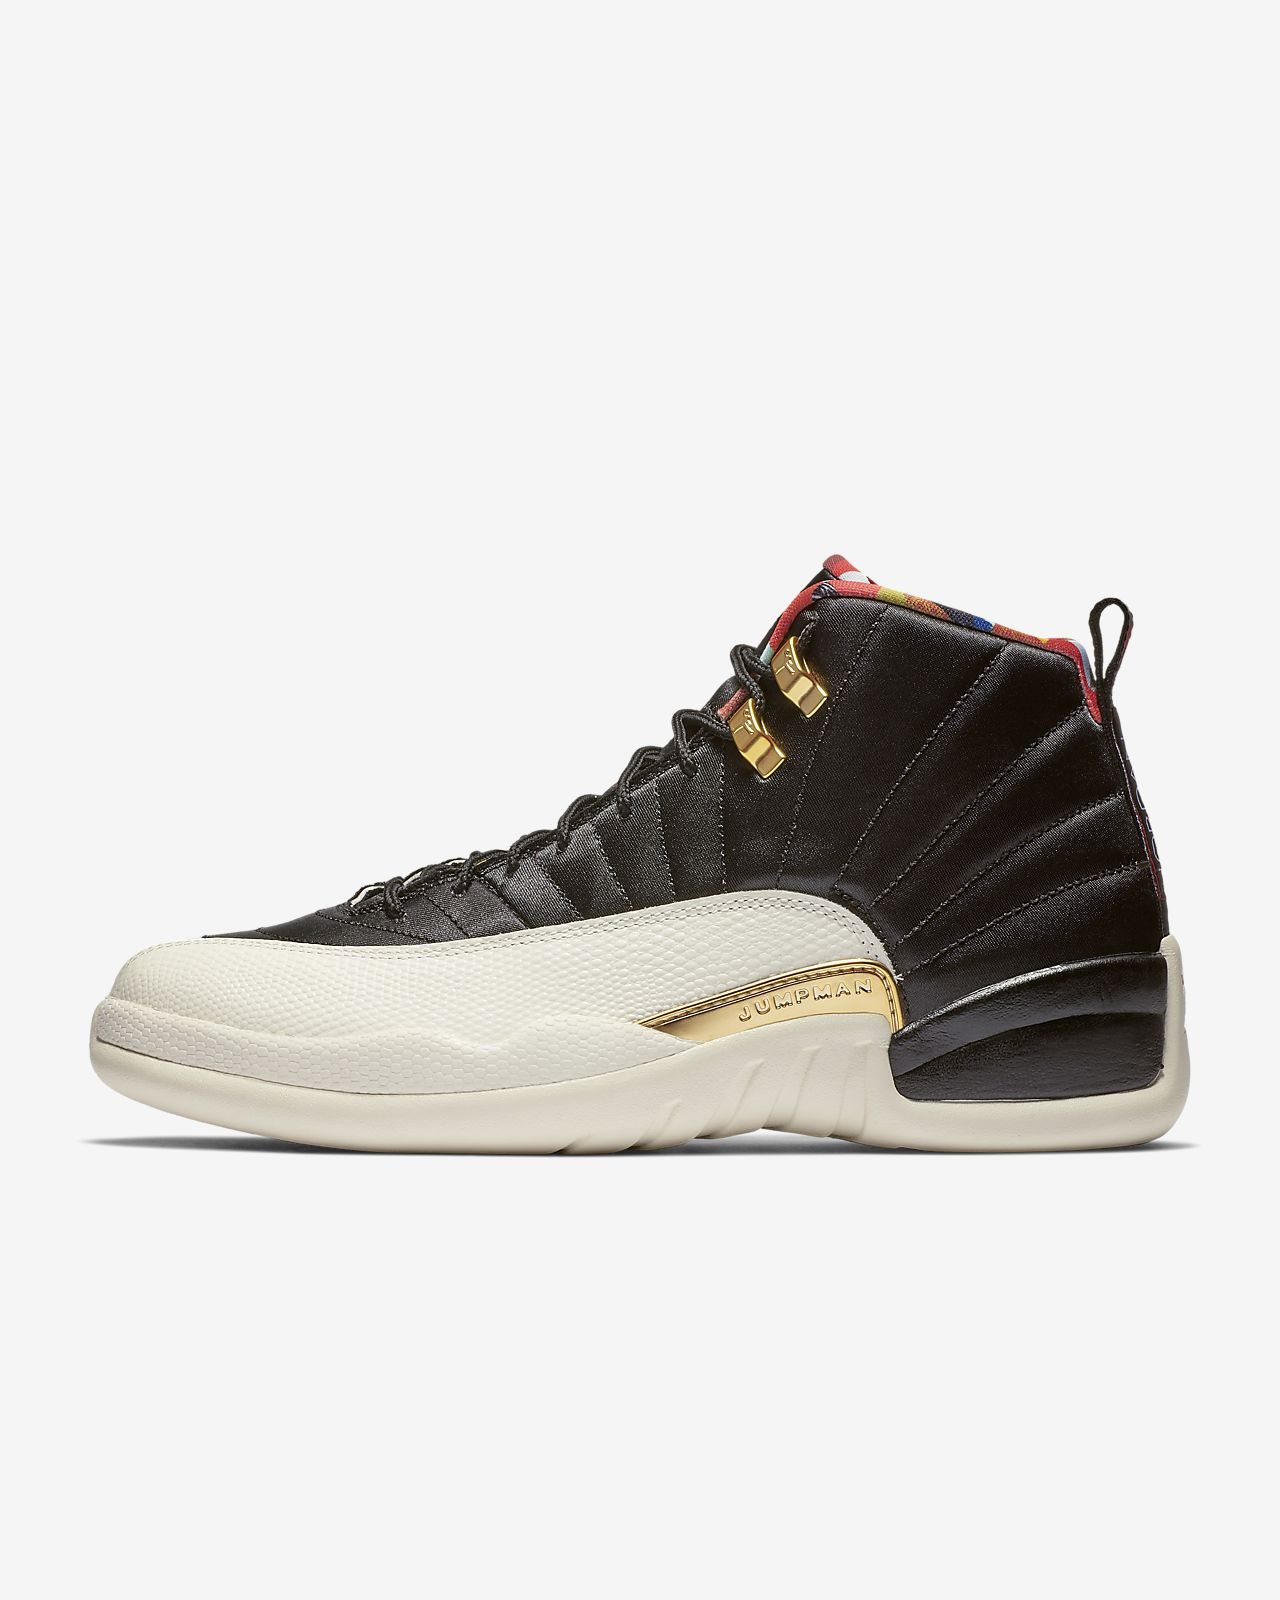 72003d4dfe0f Air Jordan 12 Retro CNY Men s Shoe. Nike.com